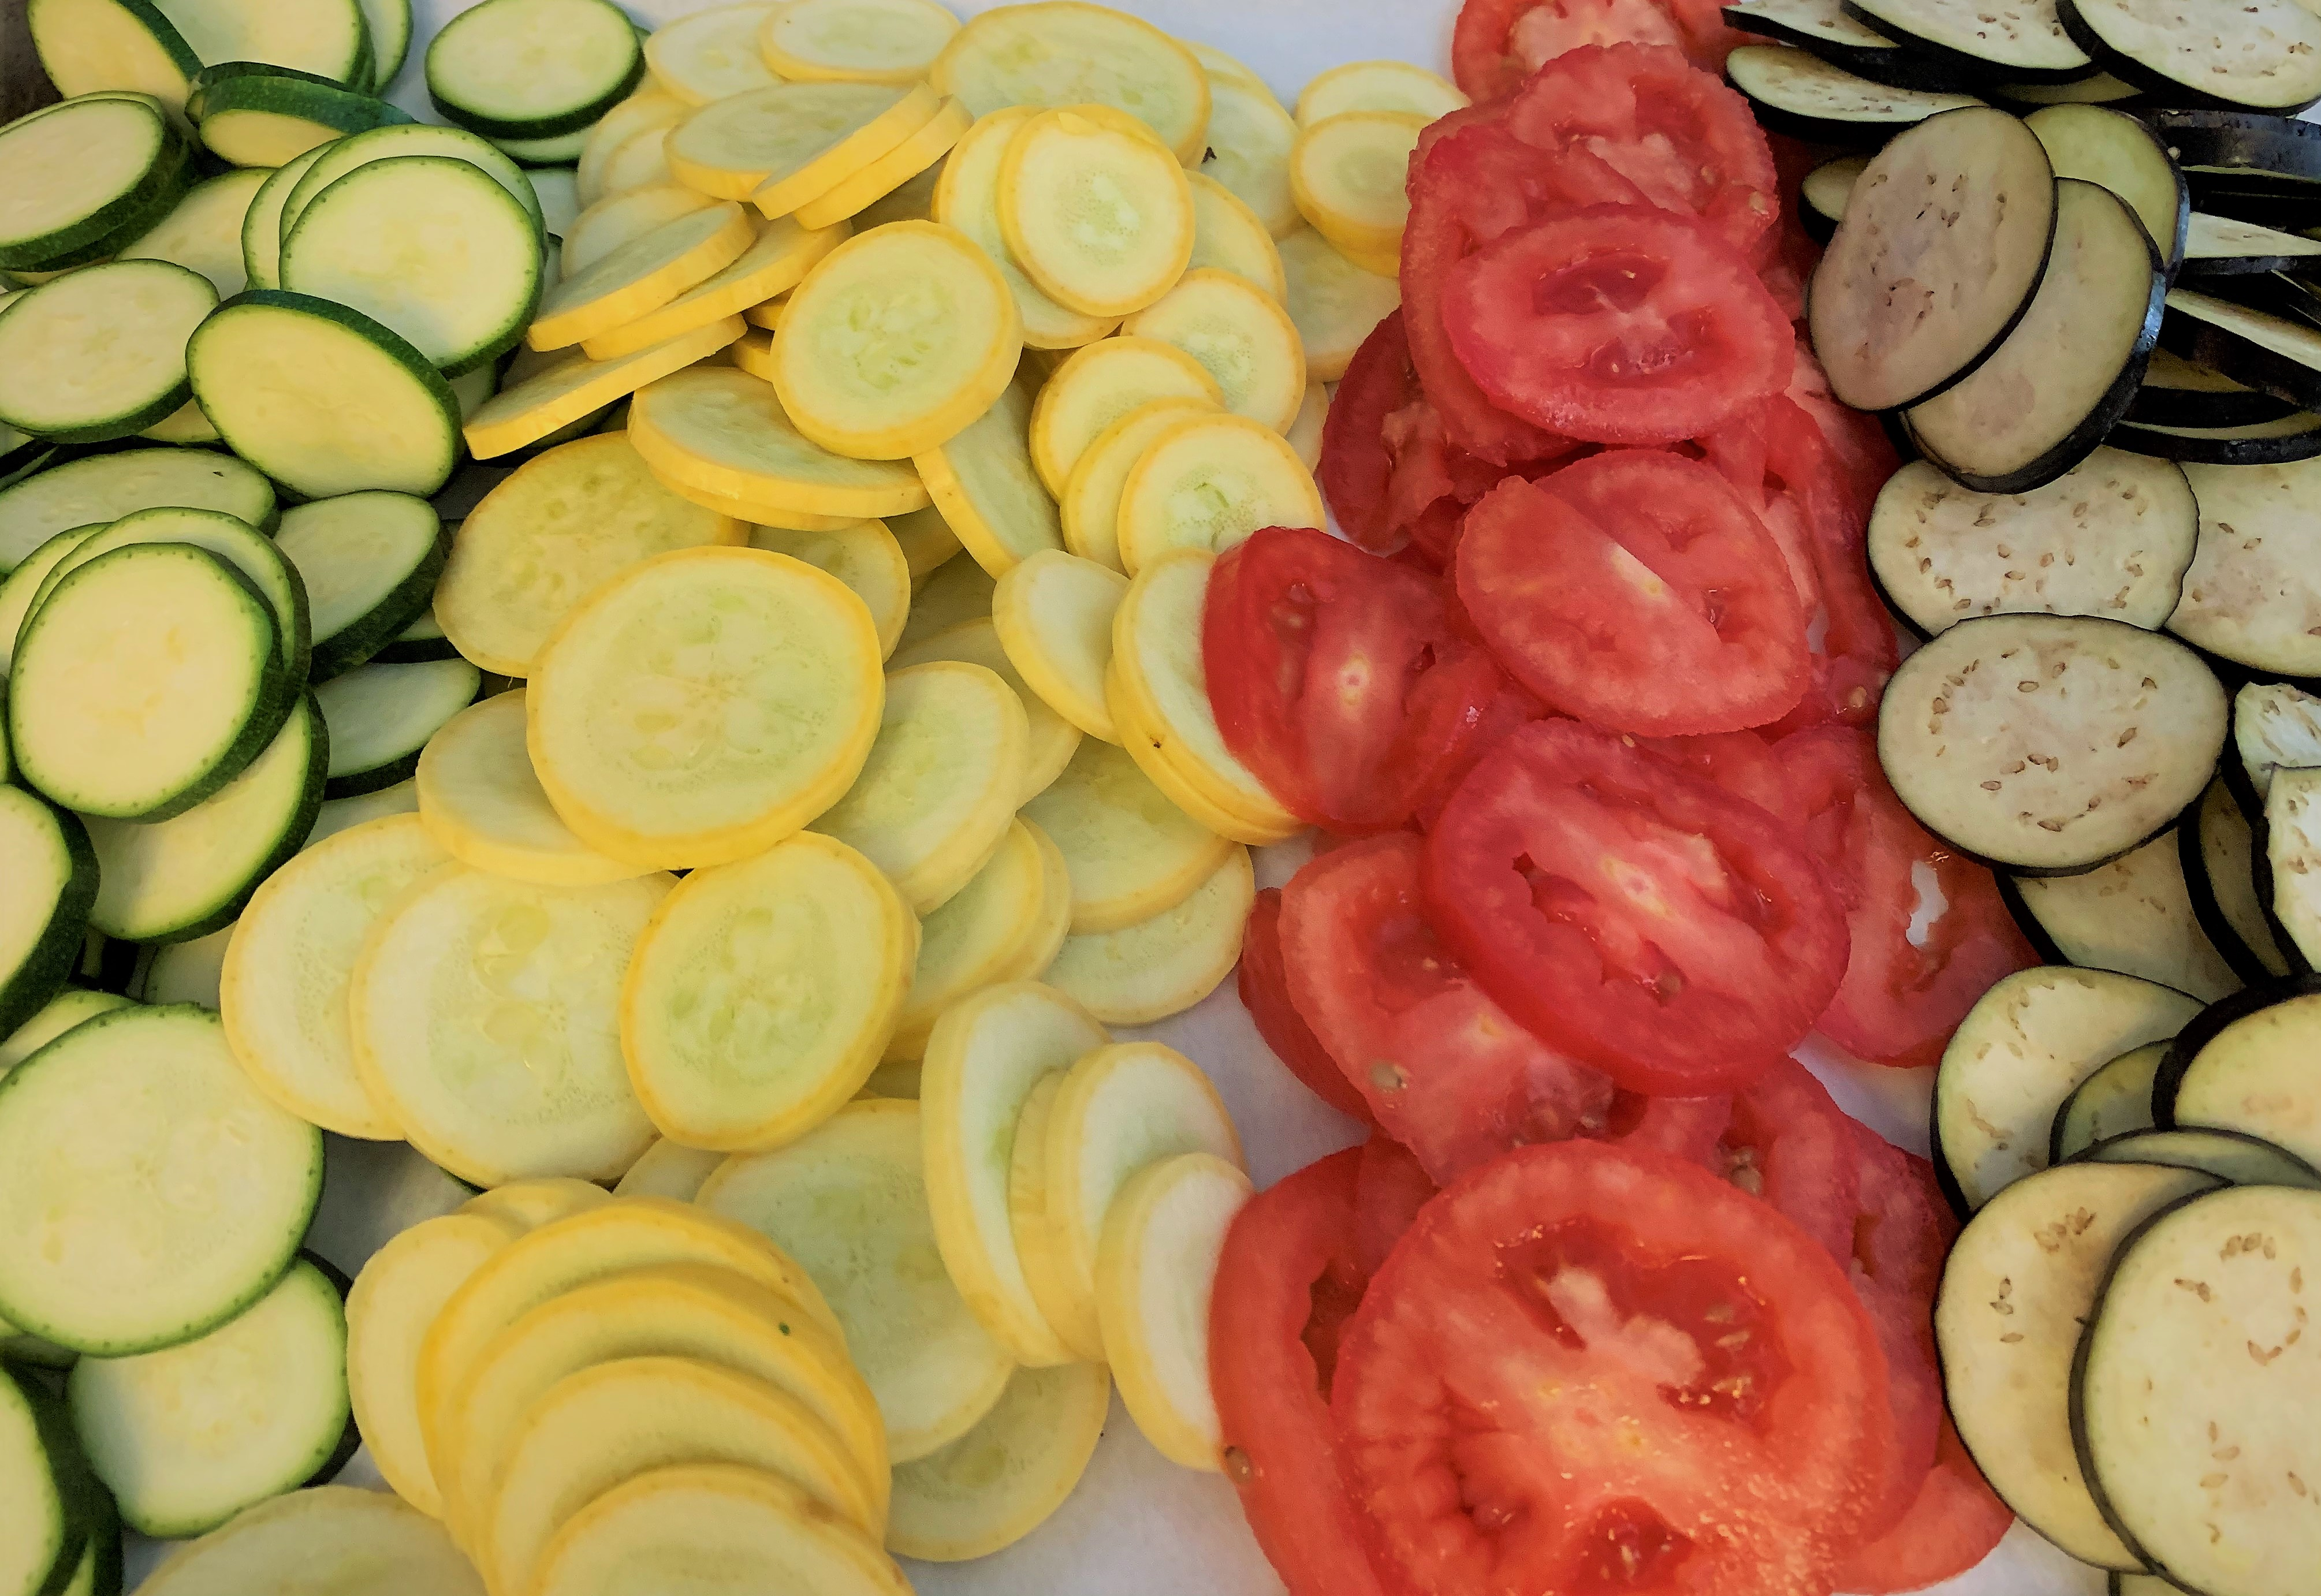 Sliced Vegetables For Our Ratatouille From Ratatouille - Food From Disney Movies